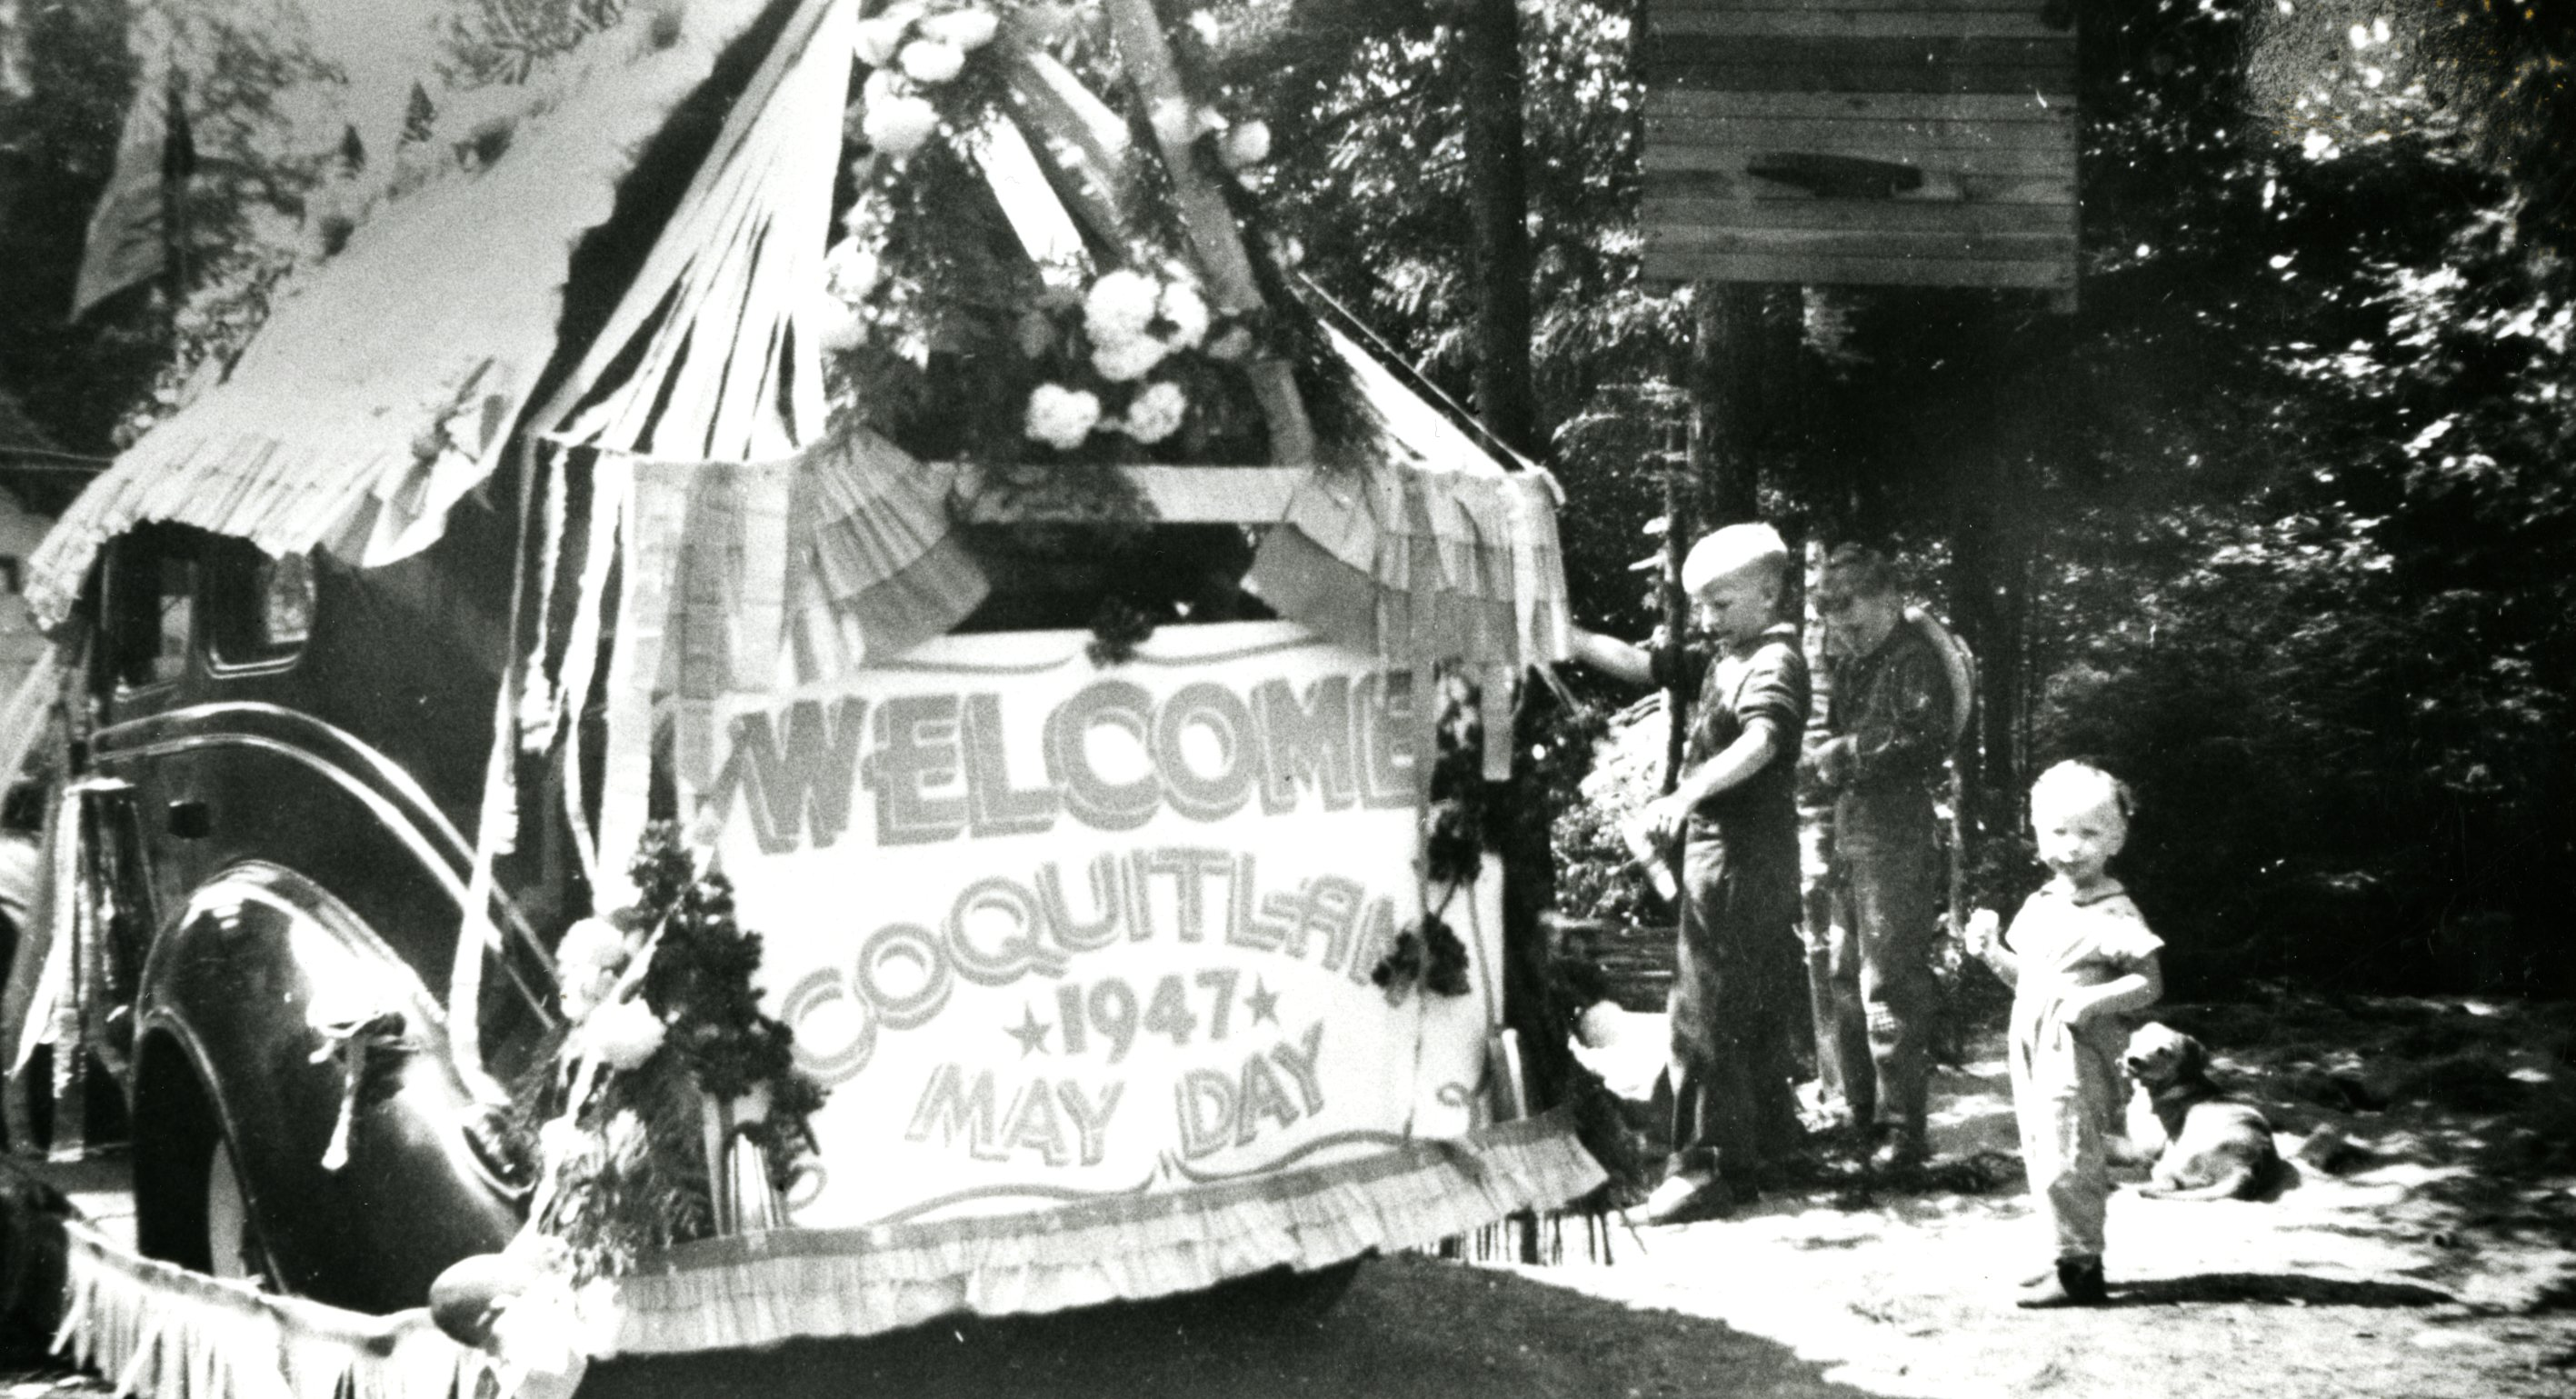 May Day Parade, Austin Heights, 1947 (JPG) Opens in new window